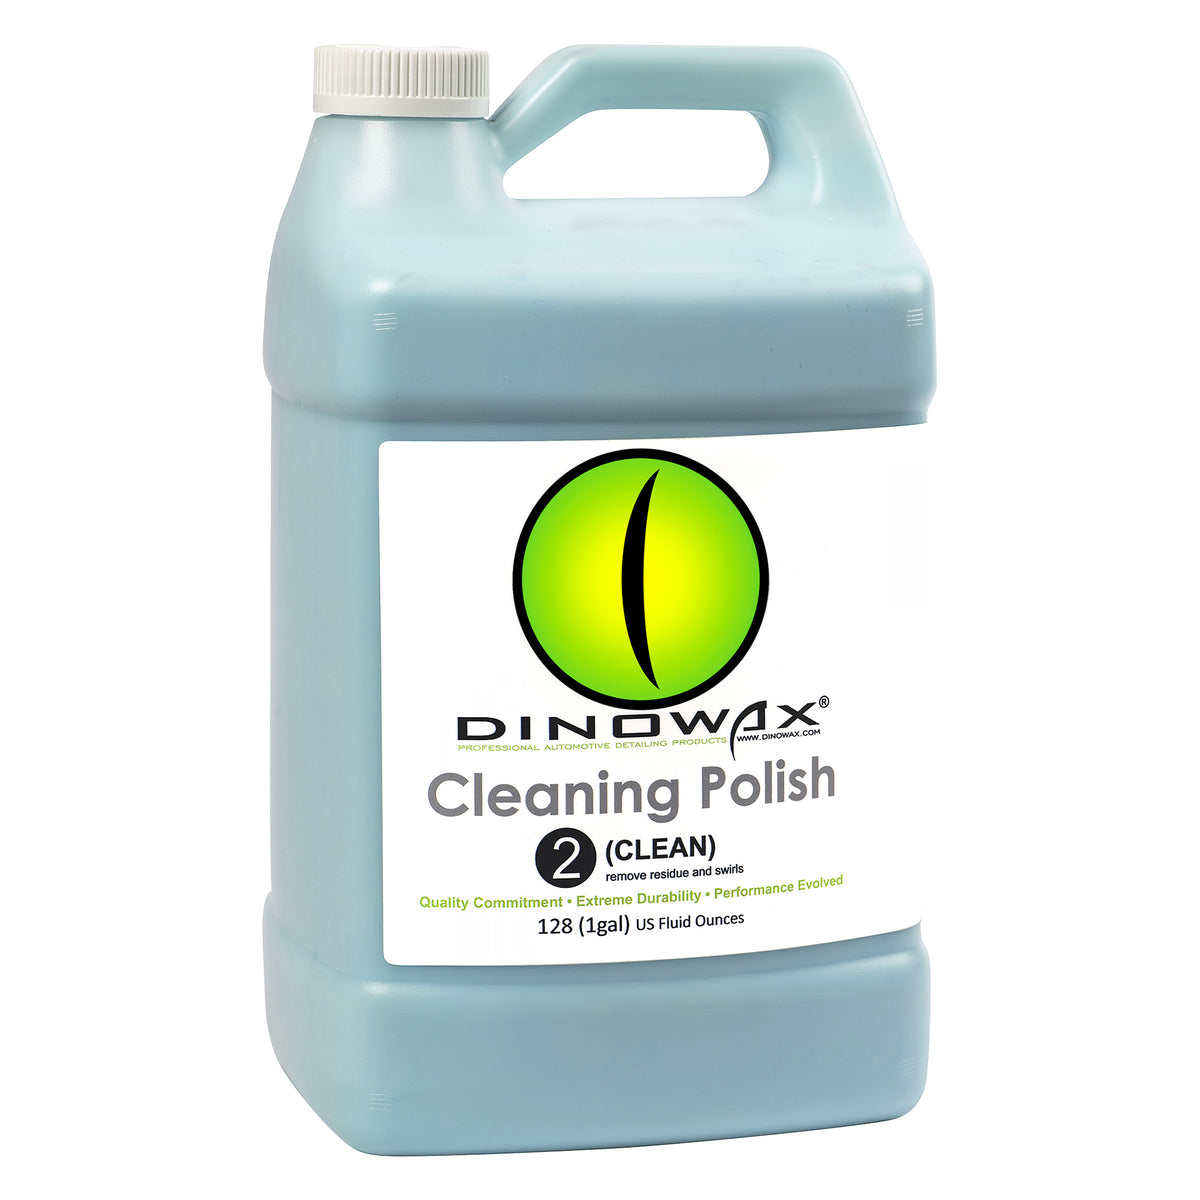 Dinowax Cleaning Polish for cars